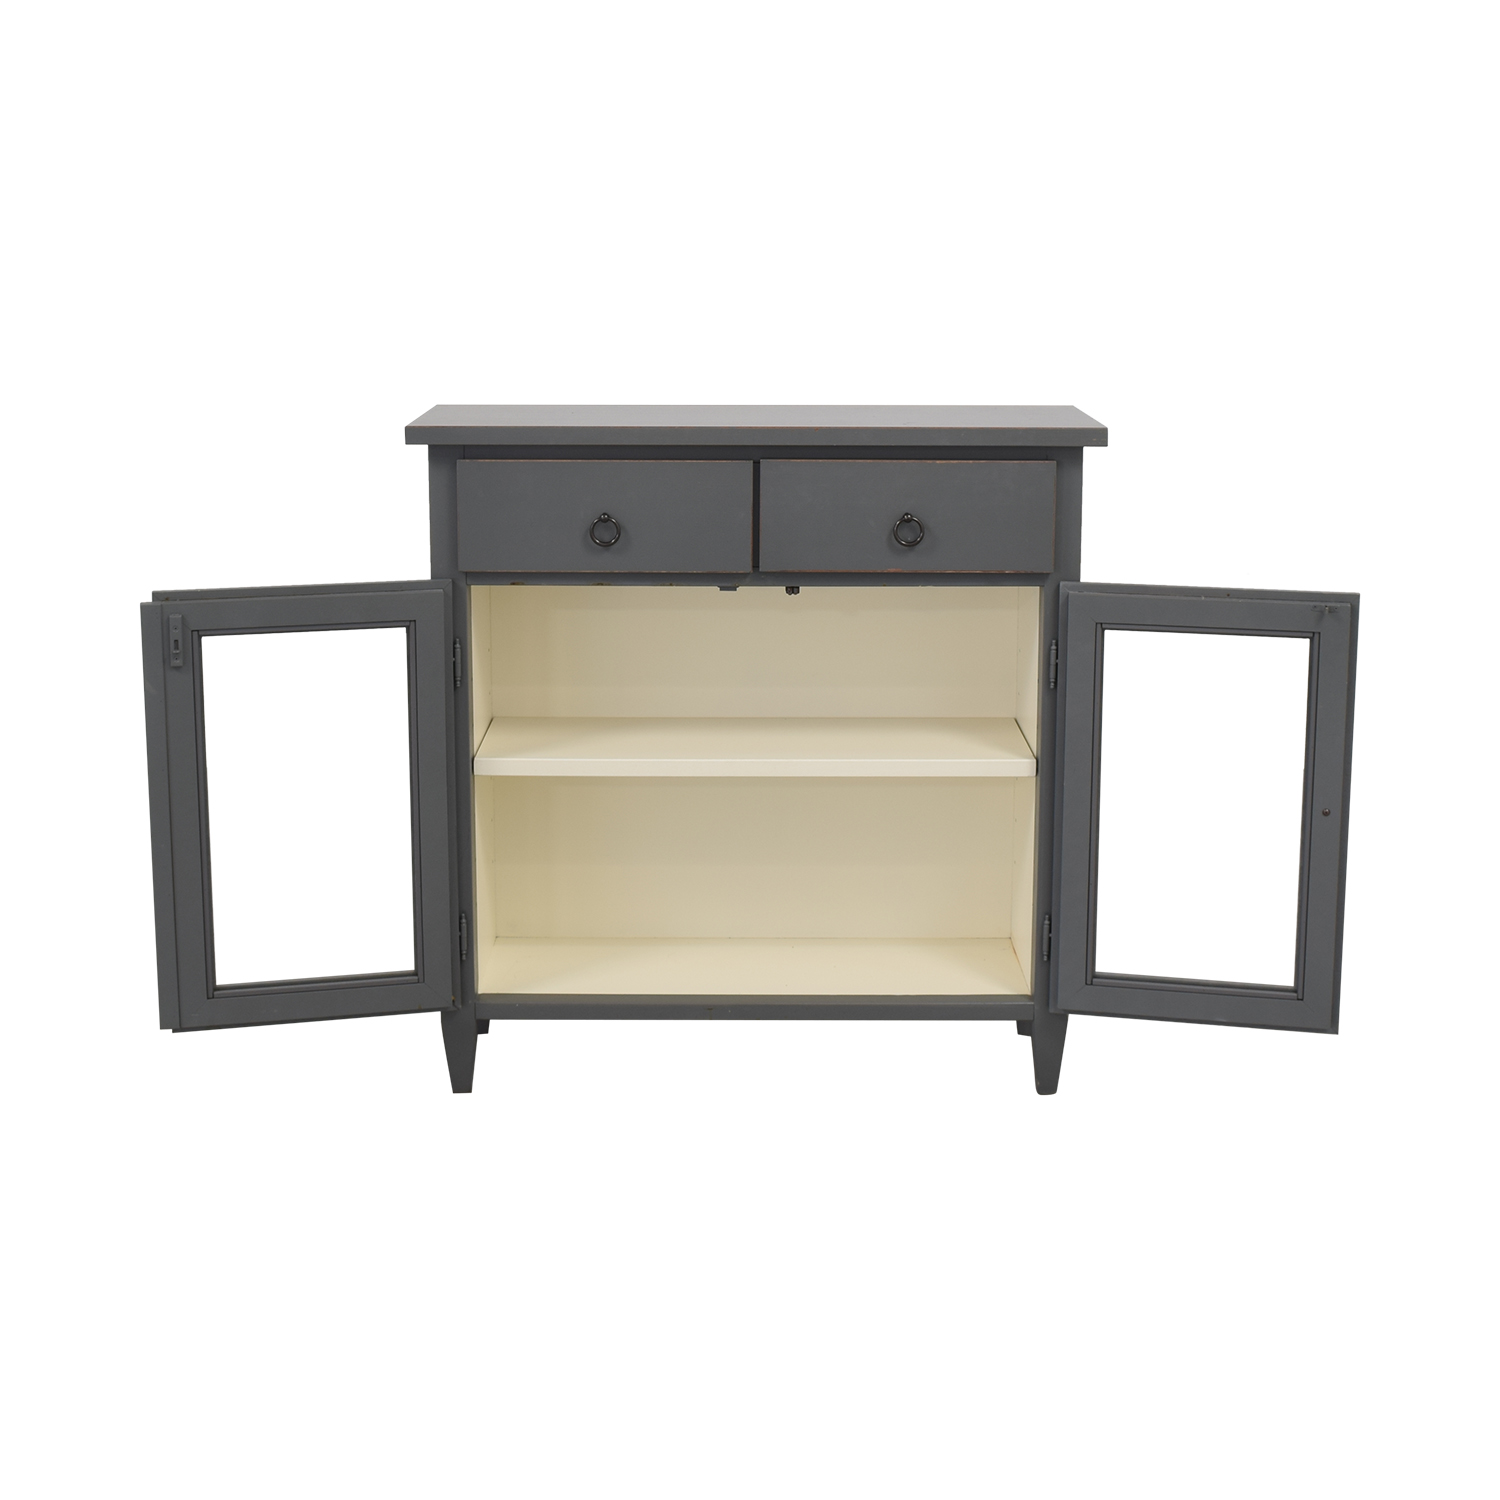 Crate & Barrel Crate & Barrel Stretto Grey Entryway Cabinet